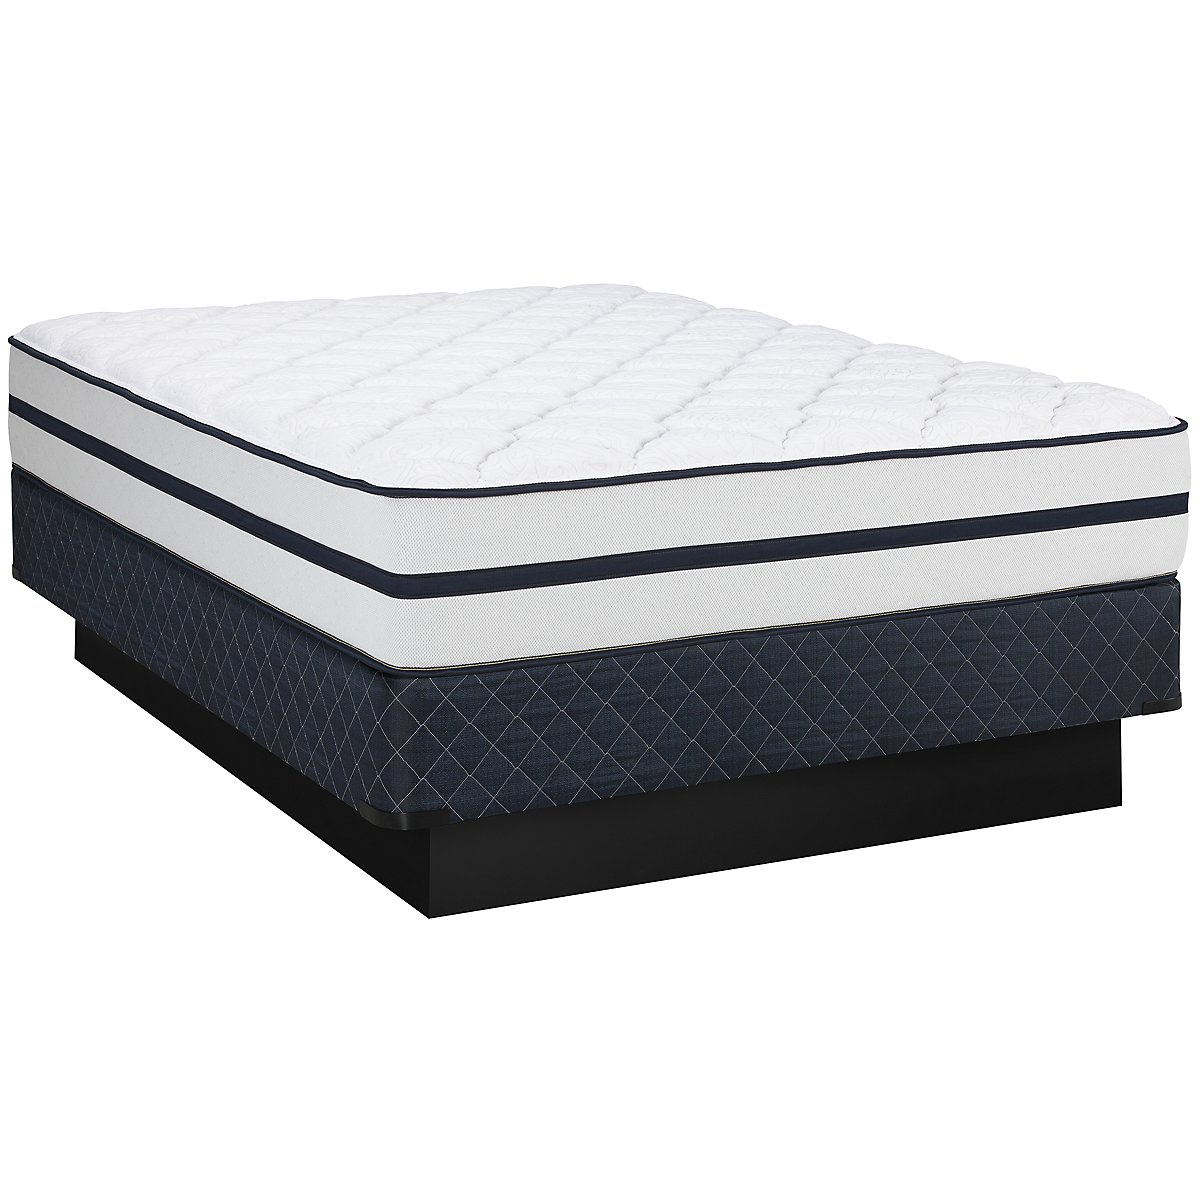 Kevin Charles Marina Luxury Firm Innerspring Mattress Set